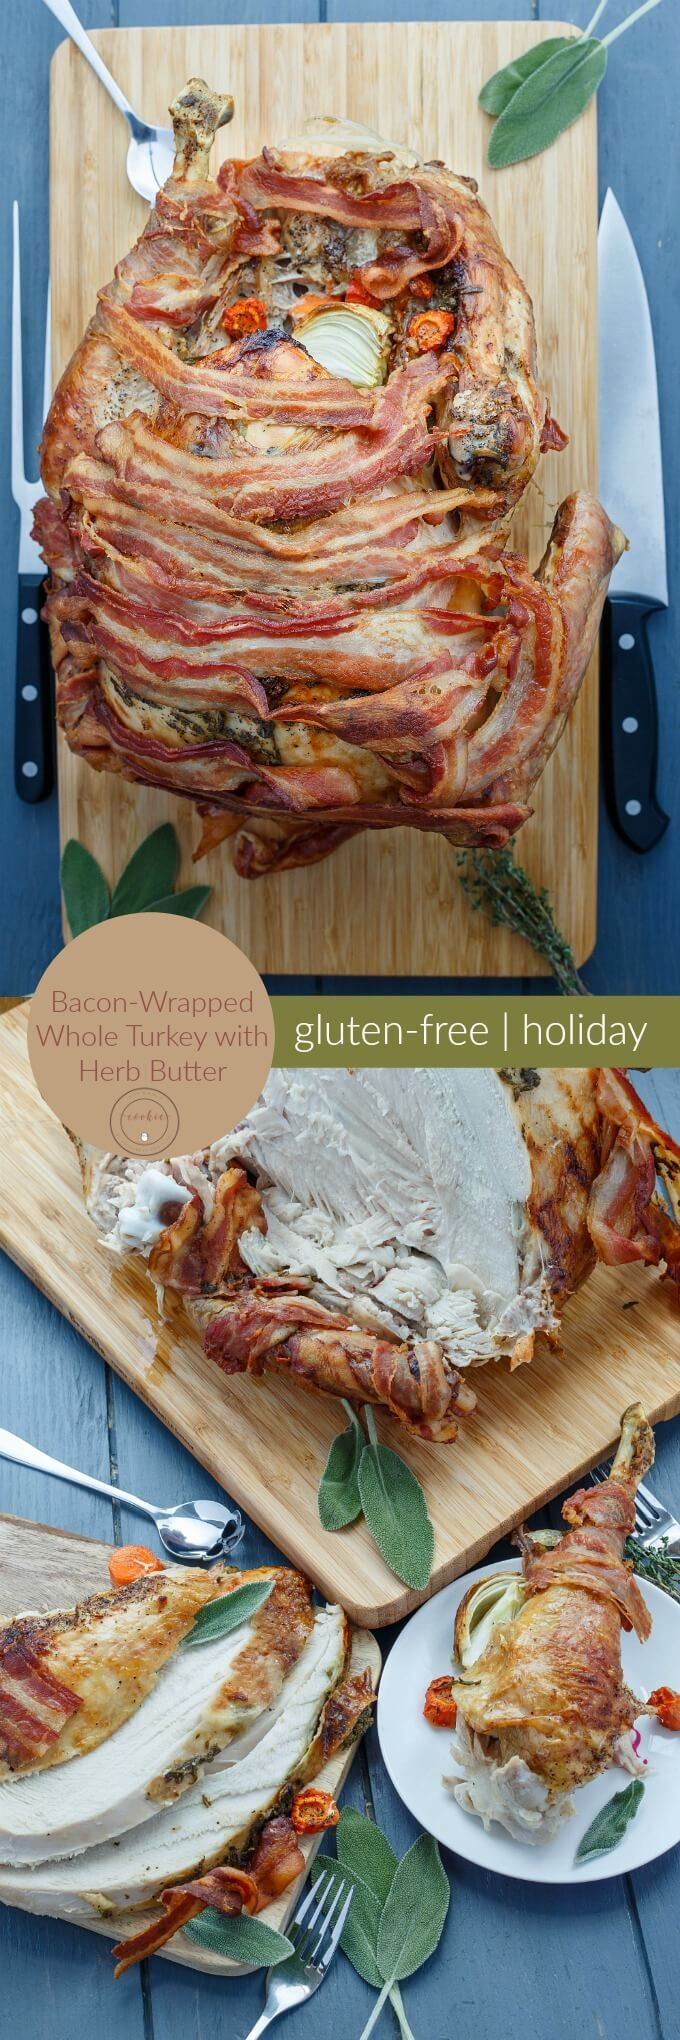 Bacon-Wrapped Whole Turkey with Herb Butter | http://thecookiewriter.com | @thecookiewriter | #turkey | Looking for an awesome main dish this holiday season (Thanksgiving and Christmas?!) Try this gluten-free recipe!